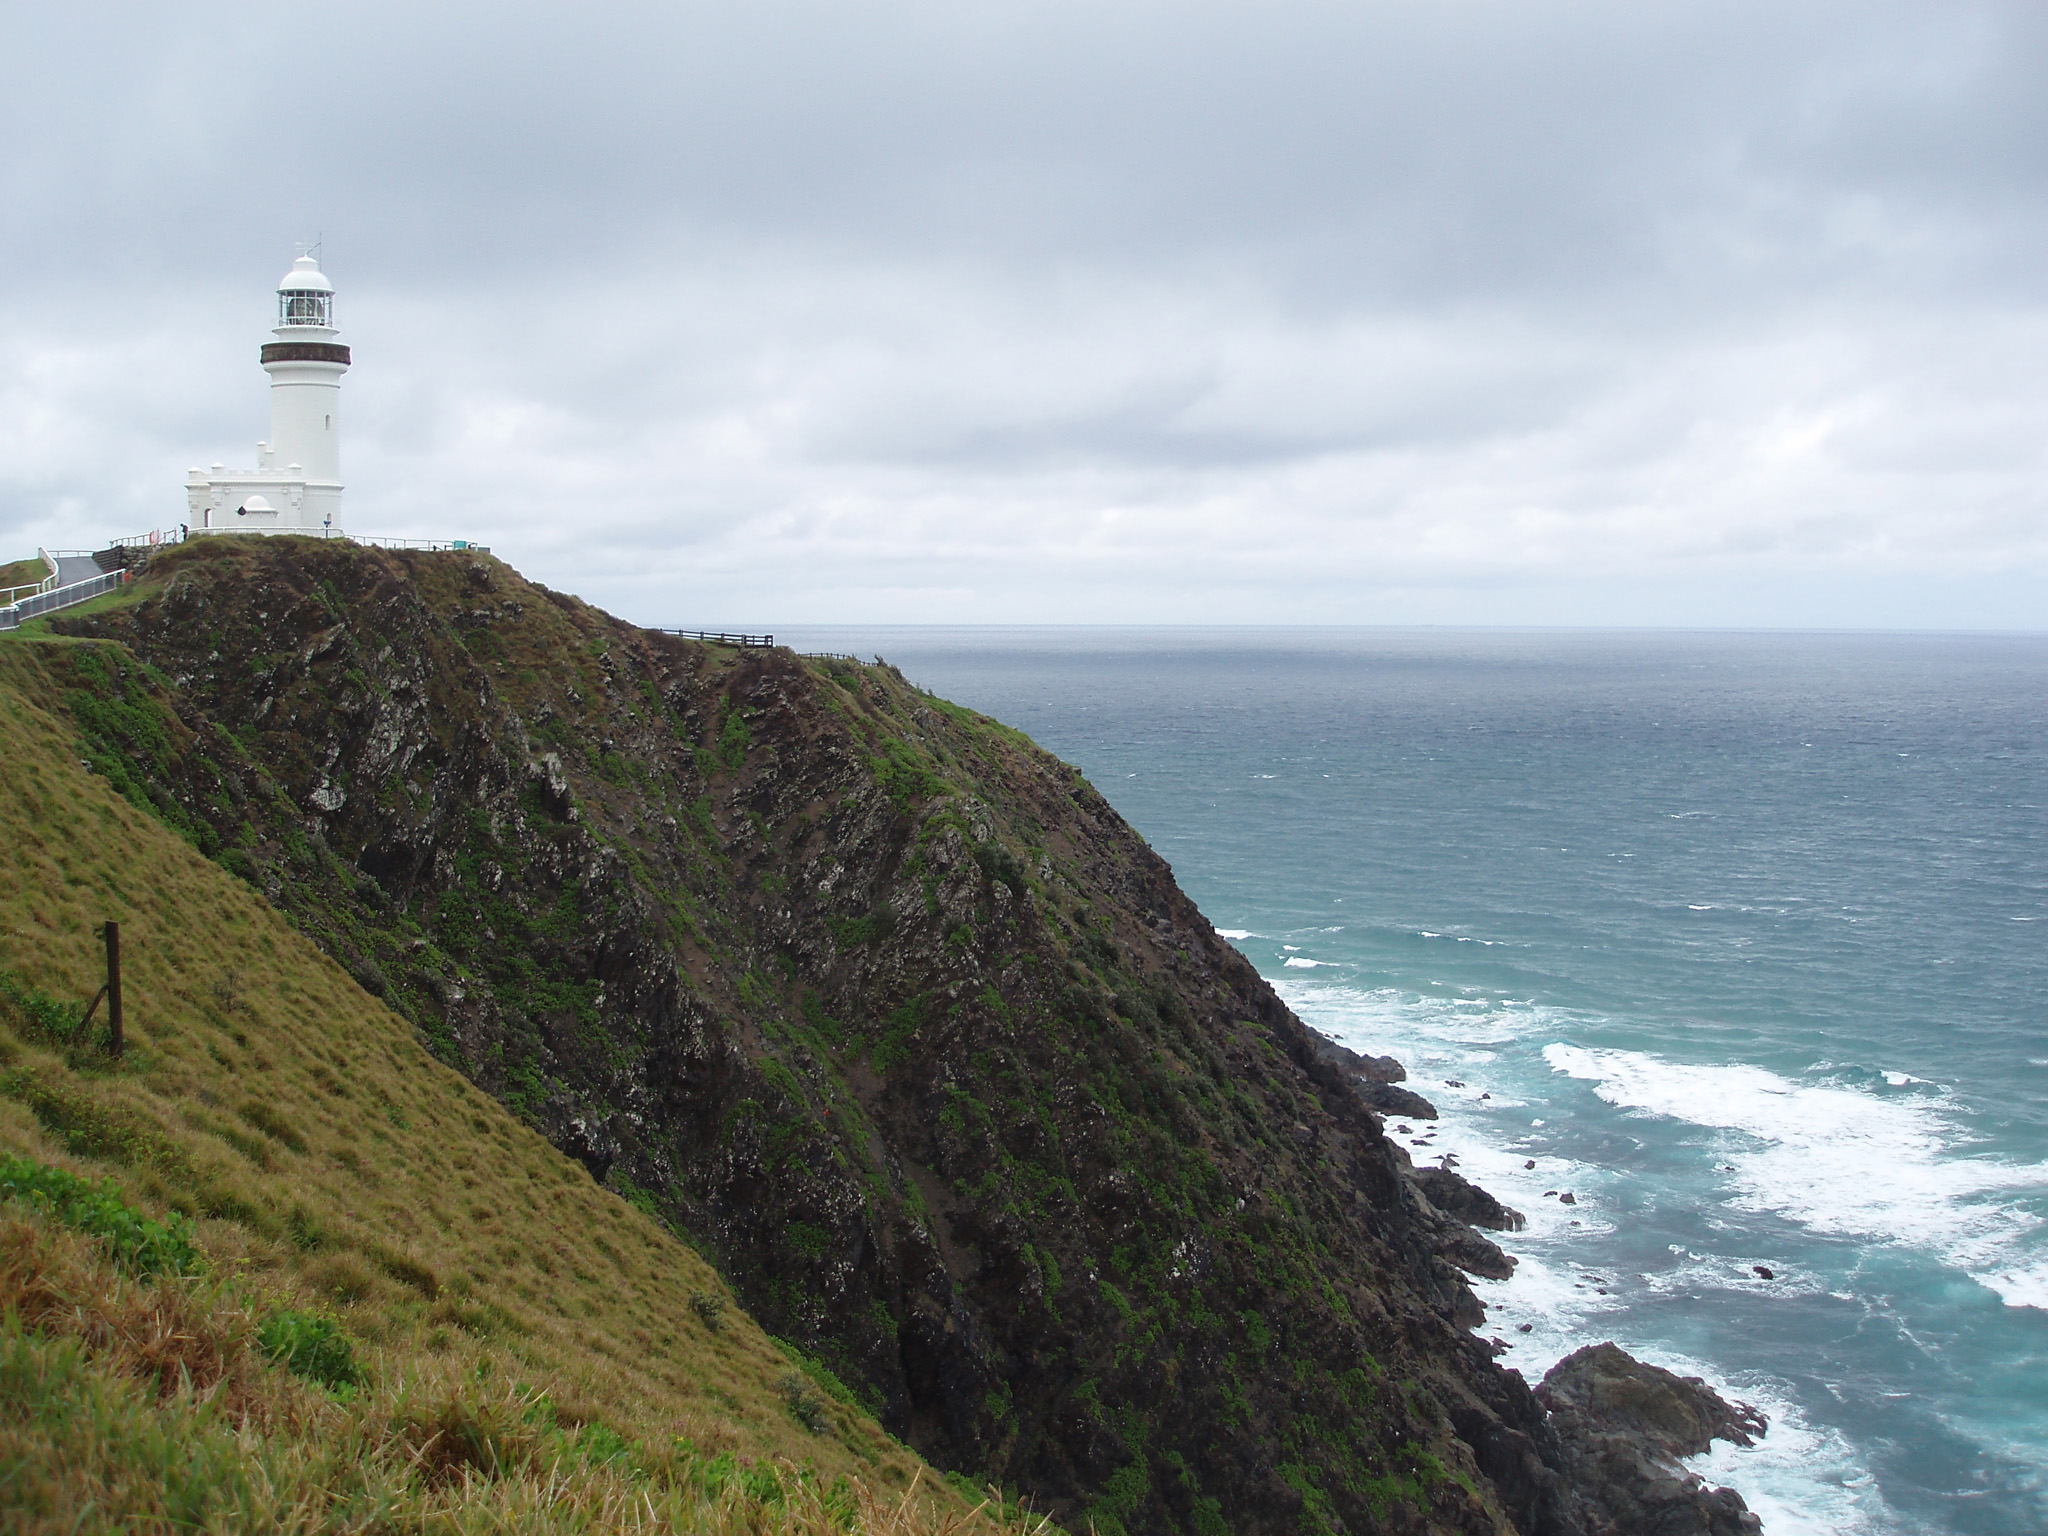 Lighthouse at Grassy High Cliff at Beautiful Byron Bay in Australia on Light Gray Sky Above.